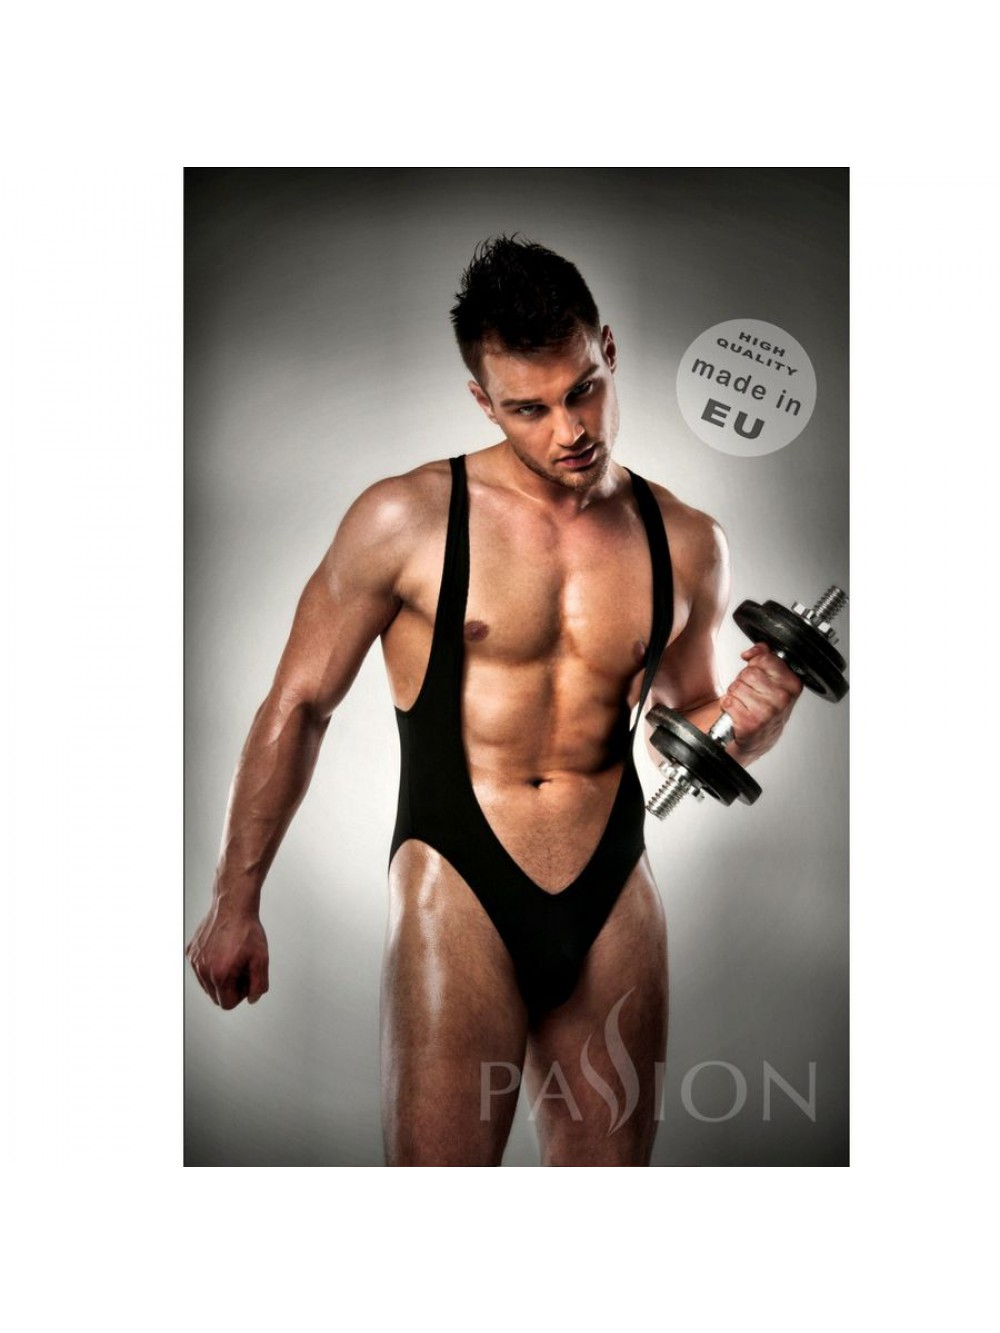 BODYJOCKSTRAP BLACK MEN LINGERIE PASSION L/XL